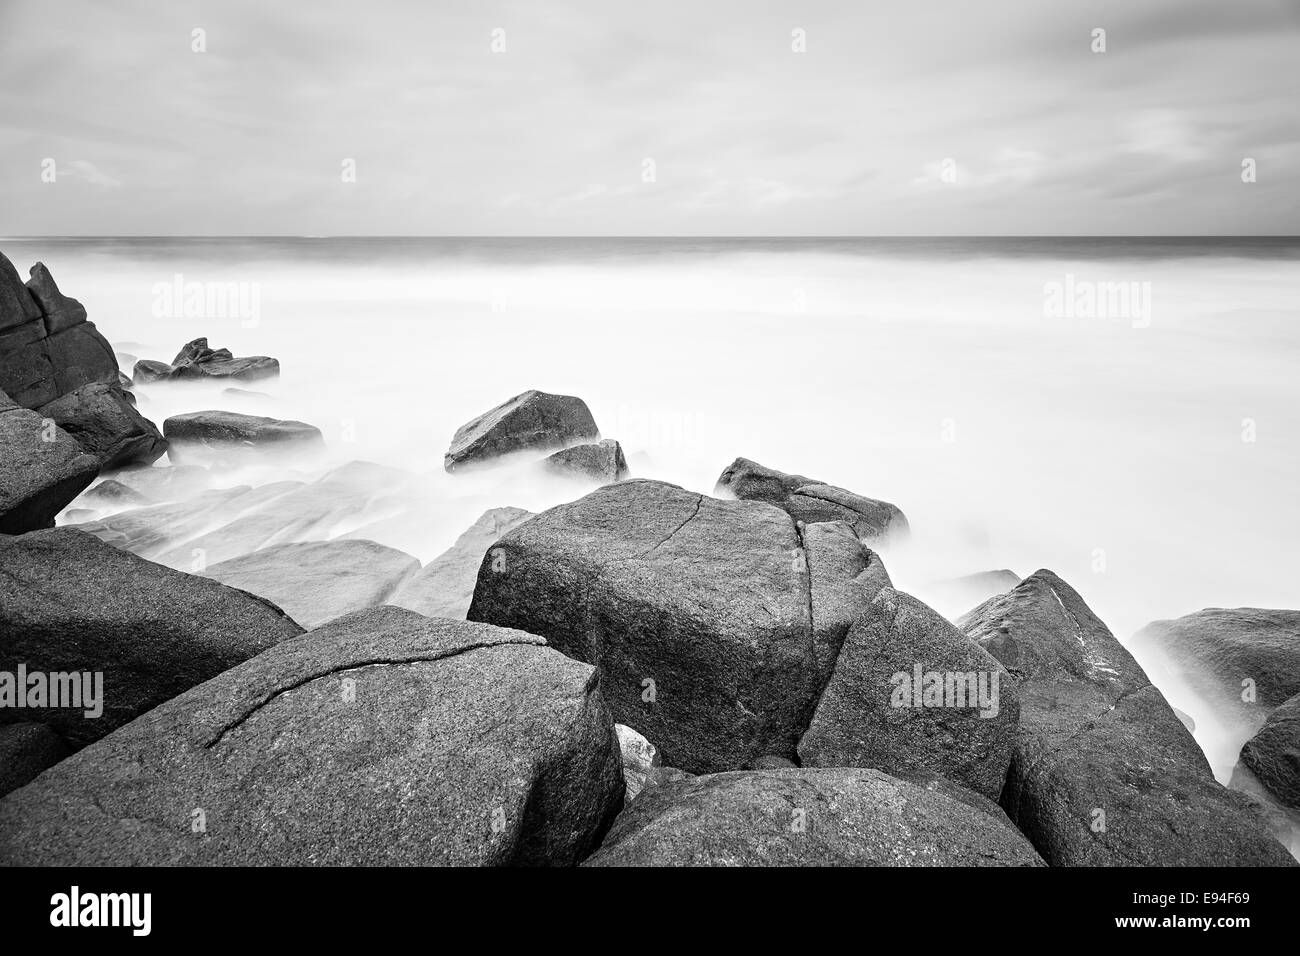 Long exposure with granite boulders at Anse Bazarca in the south of Mahe, Seychelles during a storm - Stock Image